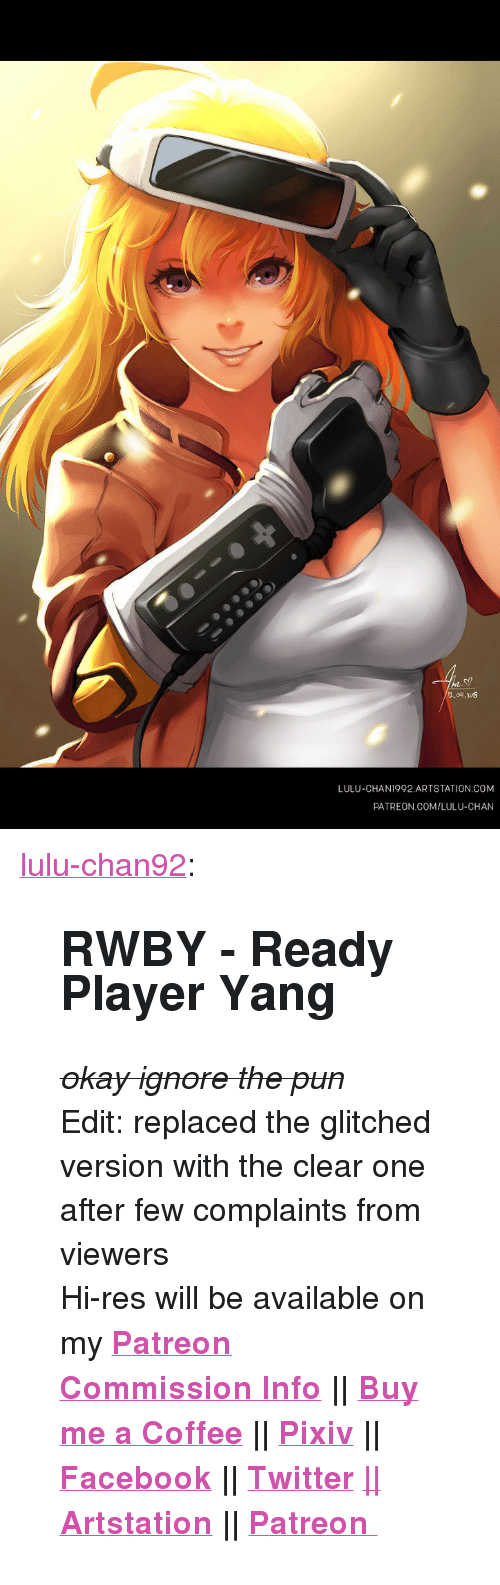 "Facebook, Target, and Tumblr: LULU-CHAN1992 ARTSTATION.COM  PATREON COM/LULU-CHAN <p><a href=""https://lulu-chan92.tumblr.com/post/172872836421/rwby-ready-player-yang-okay-ignore-the-pun-edit"" class=""tumblr_blog"" target=""_blank"">lulu-chan92</a>:</p>  <blockquote><h2><b>RWBY - Ready Player Yang</b></h2><p><strike><i>okay ignore the pun</i></strike></p><p>Edit: replaced the glitched version with the clear one after few complaints from viewers</p><p>Hi-res will be available on my   <b><a href=""http://t.umblr.com/redirect?z=https%3A%2F%2Fwww.patreon.com%2Fluluchan&amp;t=M2Y0MGM2ZjA2ZDI2ZTg5NTcyMTdkYTM5NDUwNDhhZWRhZTk4ZTAwMixzQThjUTU1Mg%3D%3D&amp;b=t%3A_LvoDJu6UU3-jFYIXYTxIg&amp;p=https%3A%2F%2Flulu-chan92.tumblr.com%2Fpost%2F168166693606%2Fcommission-work-done-for-bocm-its-nuts-n&amp;m=1"" target=""_blank"">P</a><a href=""https://t.umblr.com/redirect?z=https%3A%2F%2Fwww.patreon.com%2Fluluchan&amp;t=NzY5MTk3YjZiZmYyNDJlMGNlNTllMzQ4MjhhNjdiNzZmZjRjMWI3MSxZblJlbTJ5Zw%3D%3D&amp;b=t%3A_LvoDJu6UU3-jFYIXYTxIg&amp;p=https%3A%2F%2Flulu-chan92.tumblr.com%2Fpost%2F172843264421%2Fcommission-from-embers-to-dust-arkos&amp;m=1"" target=""_blank"">atreon</a></b></p><p>  <b><b><b><a href=""https://lulu-chan92.tumblr.com/post/165240318286/open-commission"" target=""_blank"">Commission Info</a> 